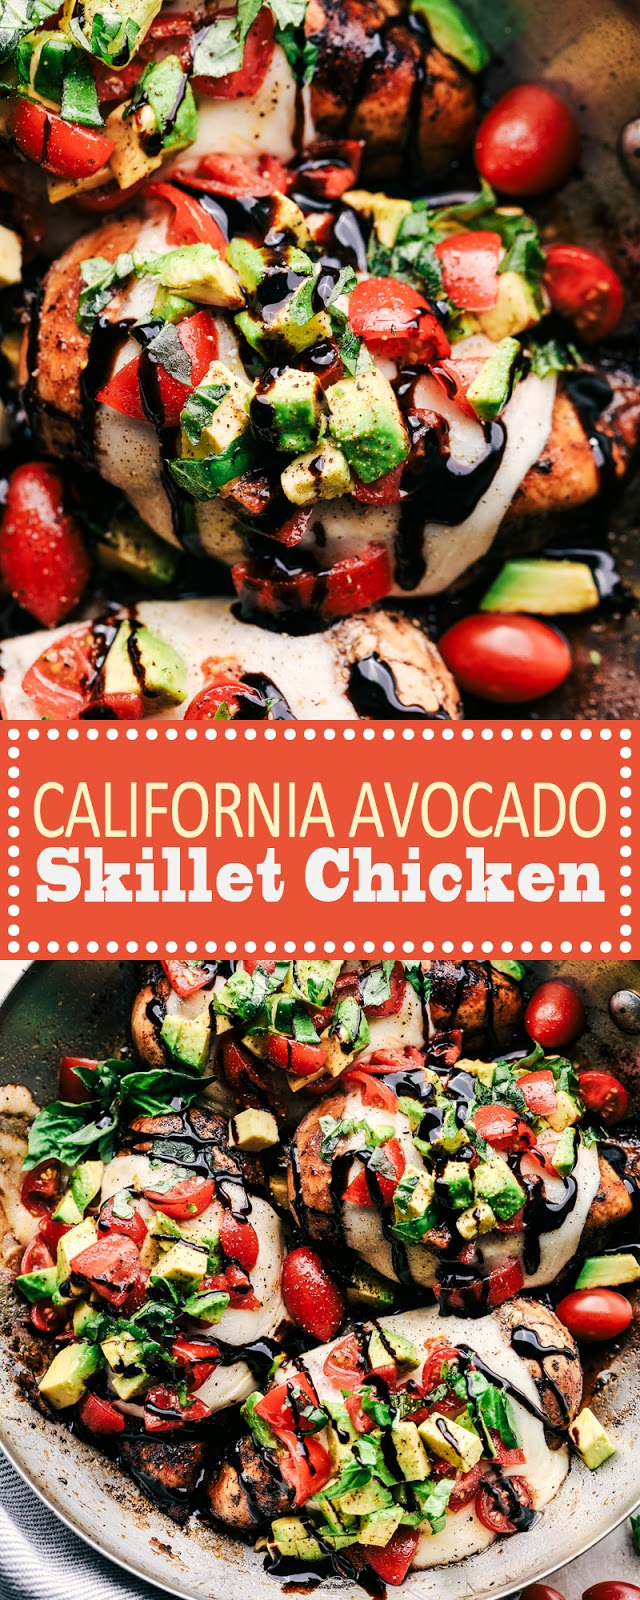 CALIFORNIA AVOCADO SKILLET CHICKEN